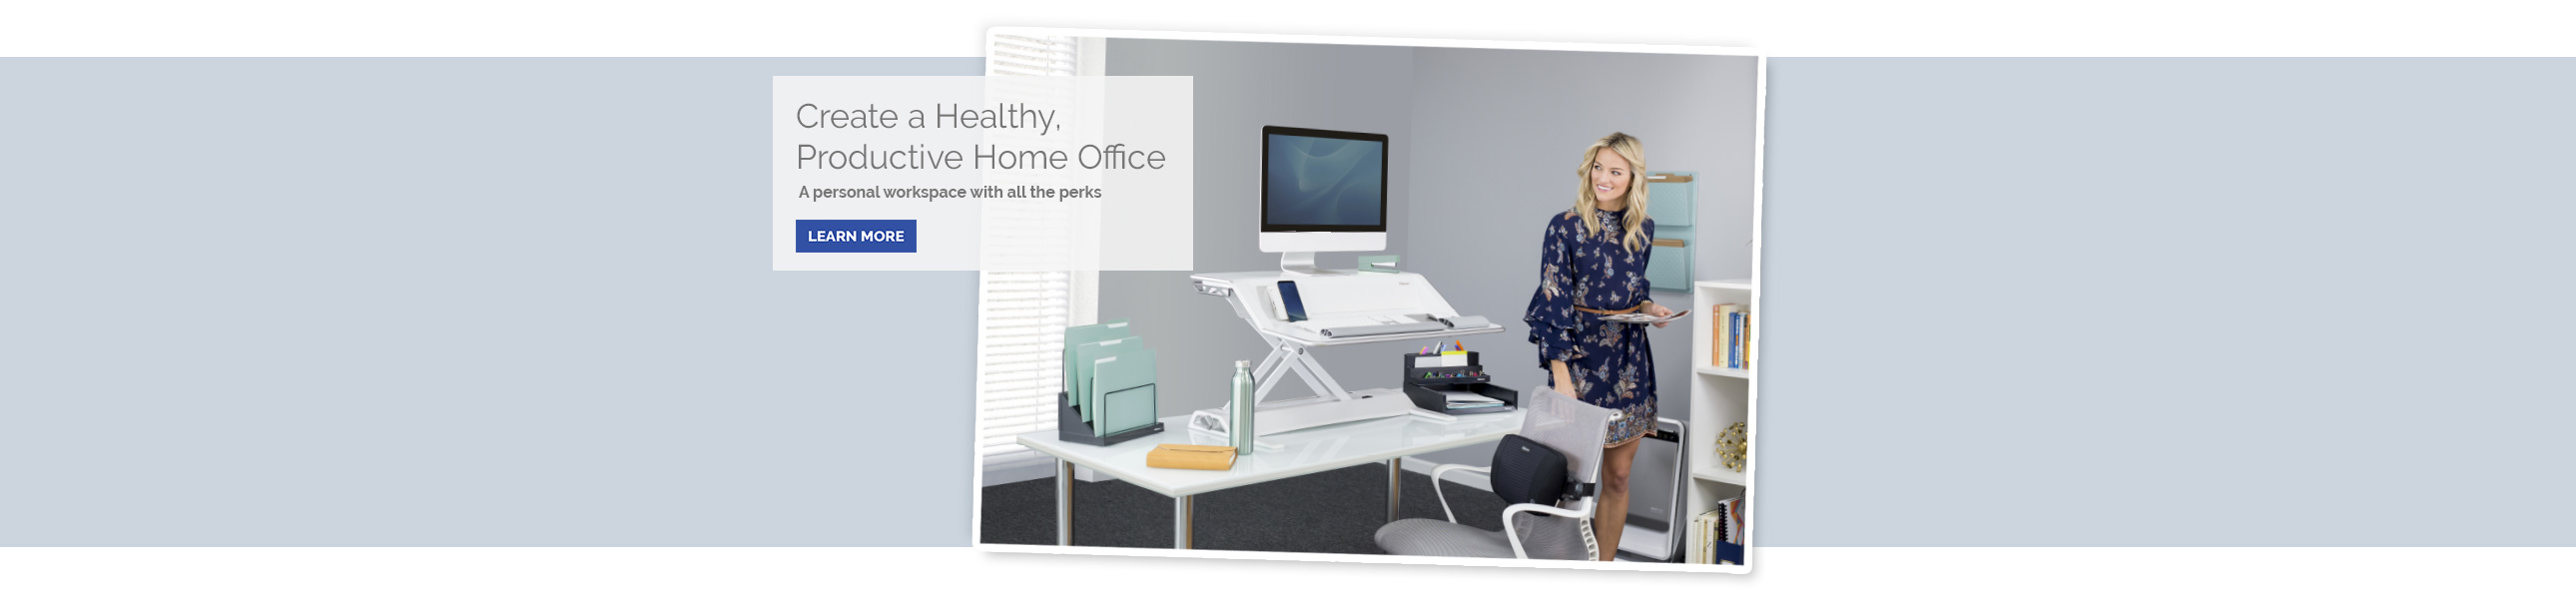 Create a Healthy Productive Home Office